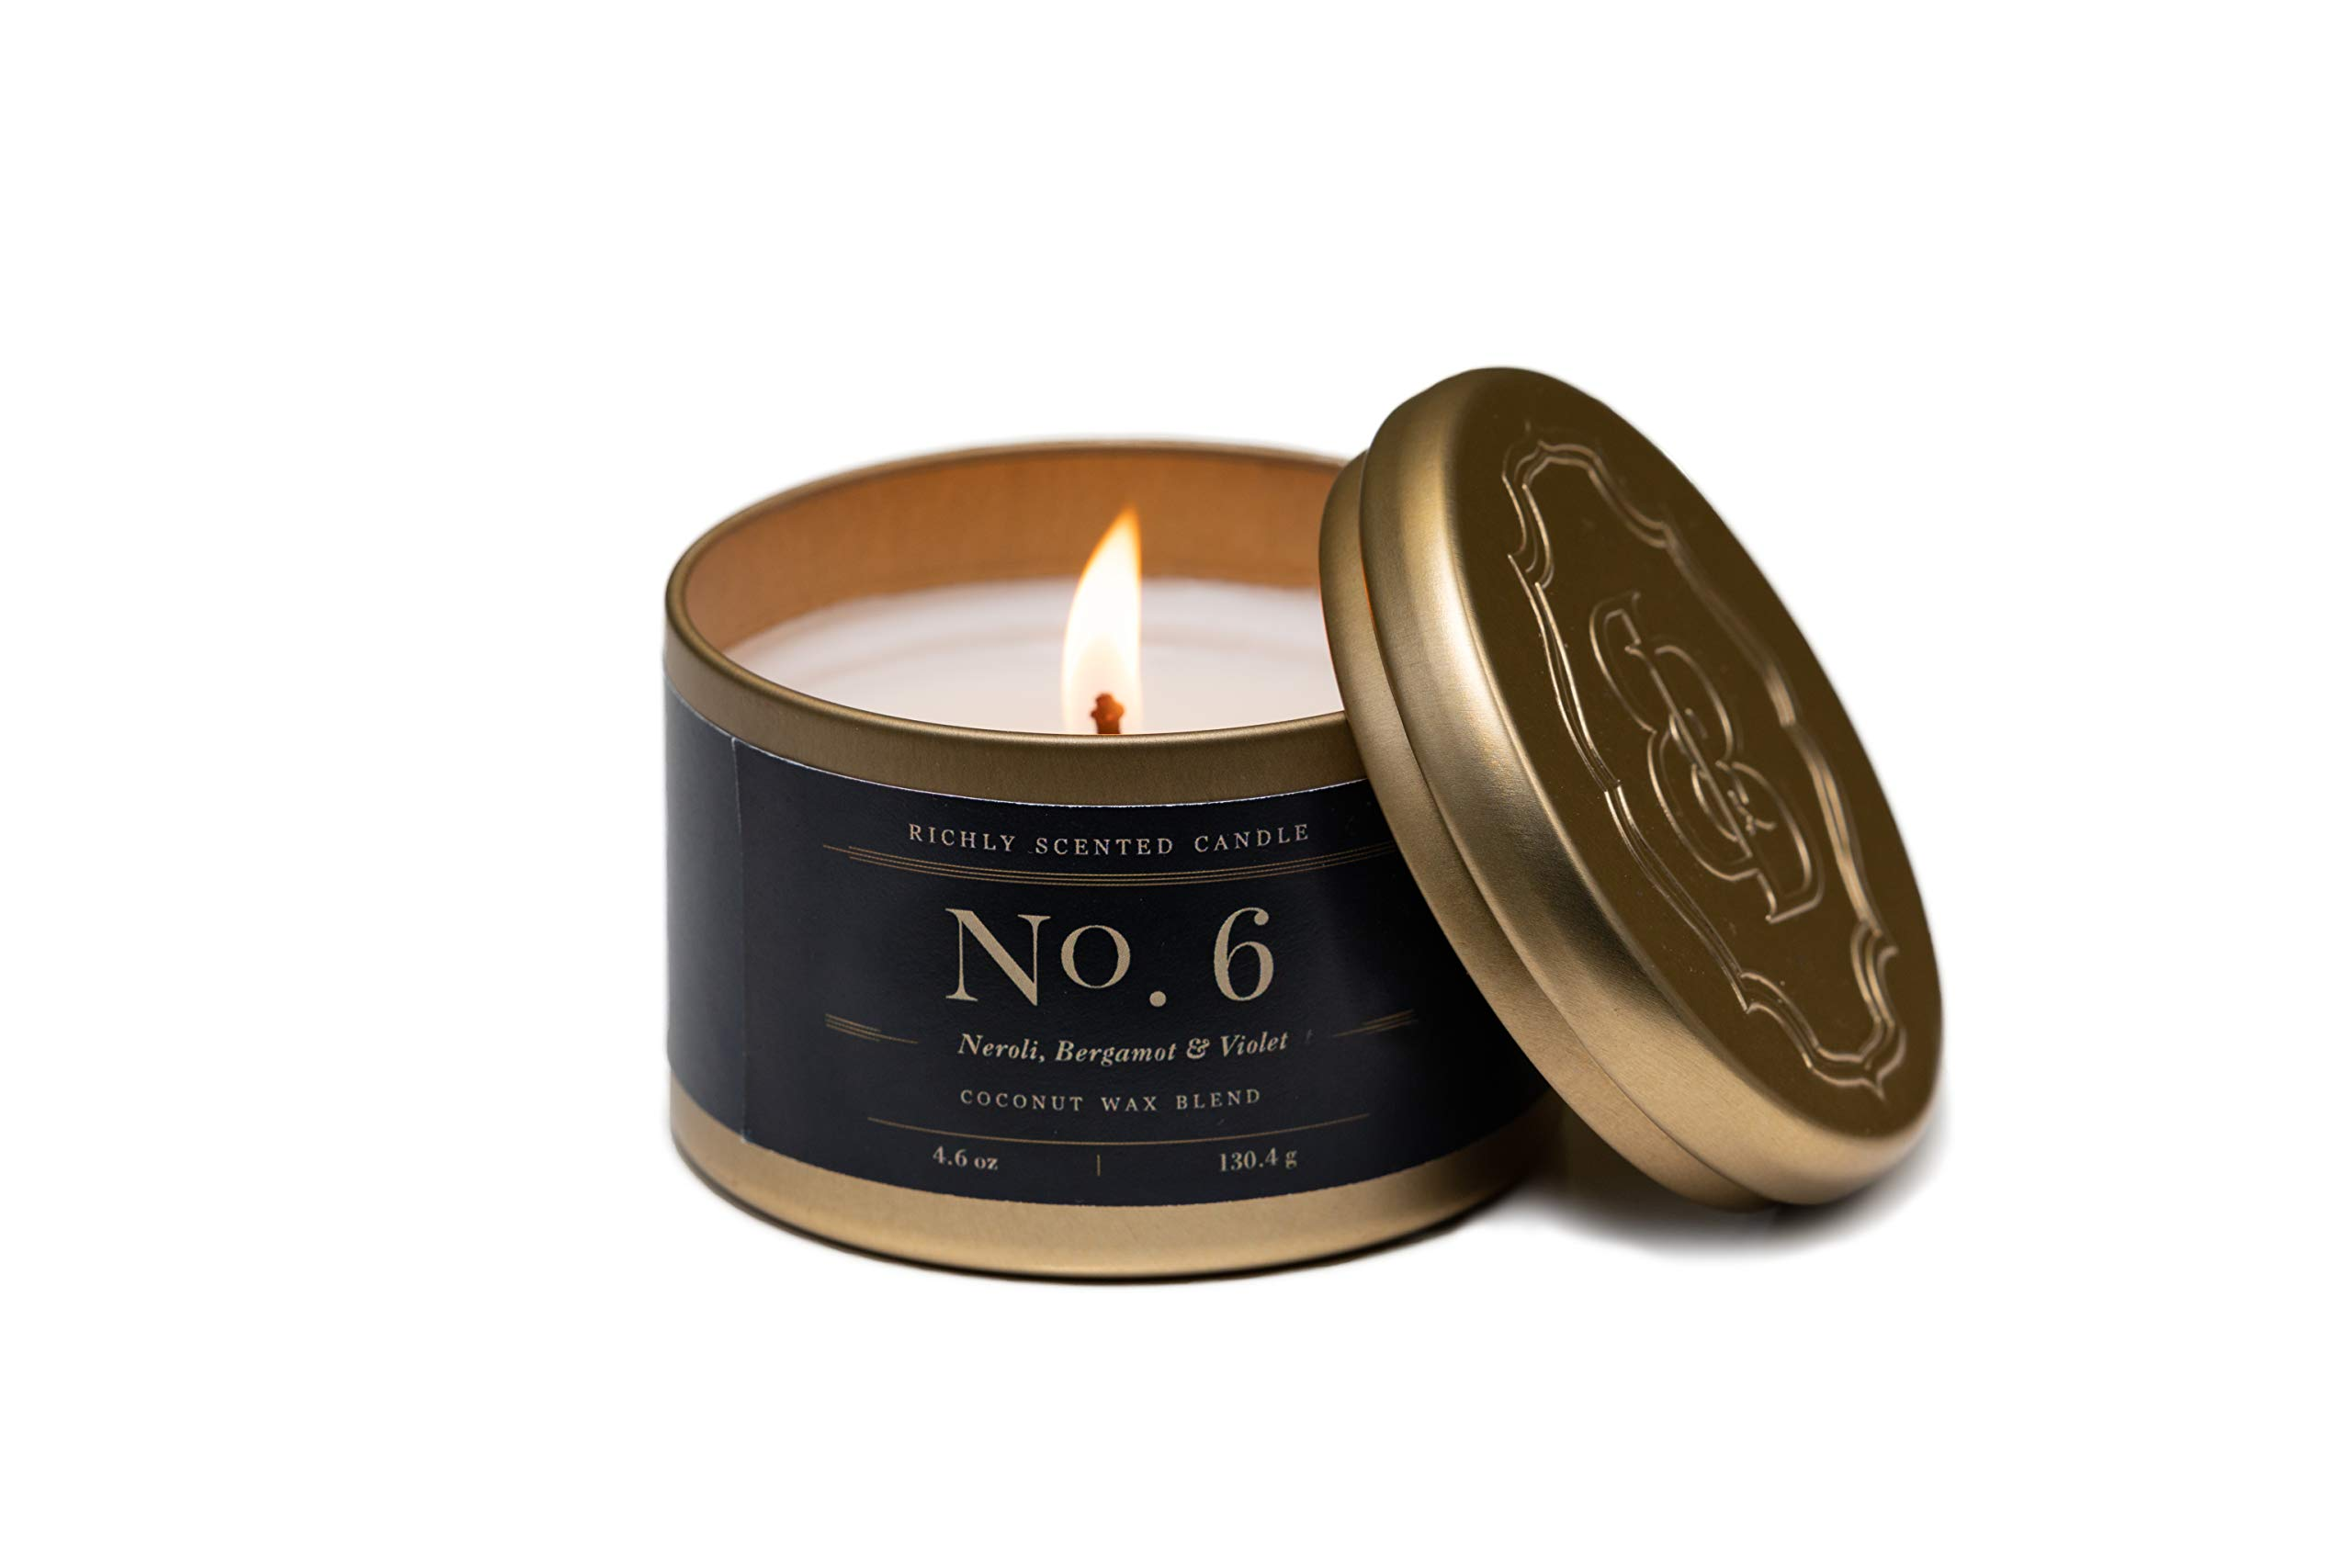 Luxury Scented Tin Candles | Neroli, Bergamot & Violet | Fragrance No. 6 | Coconut Wax Candles | Britten and Bailey's